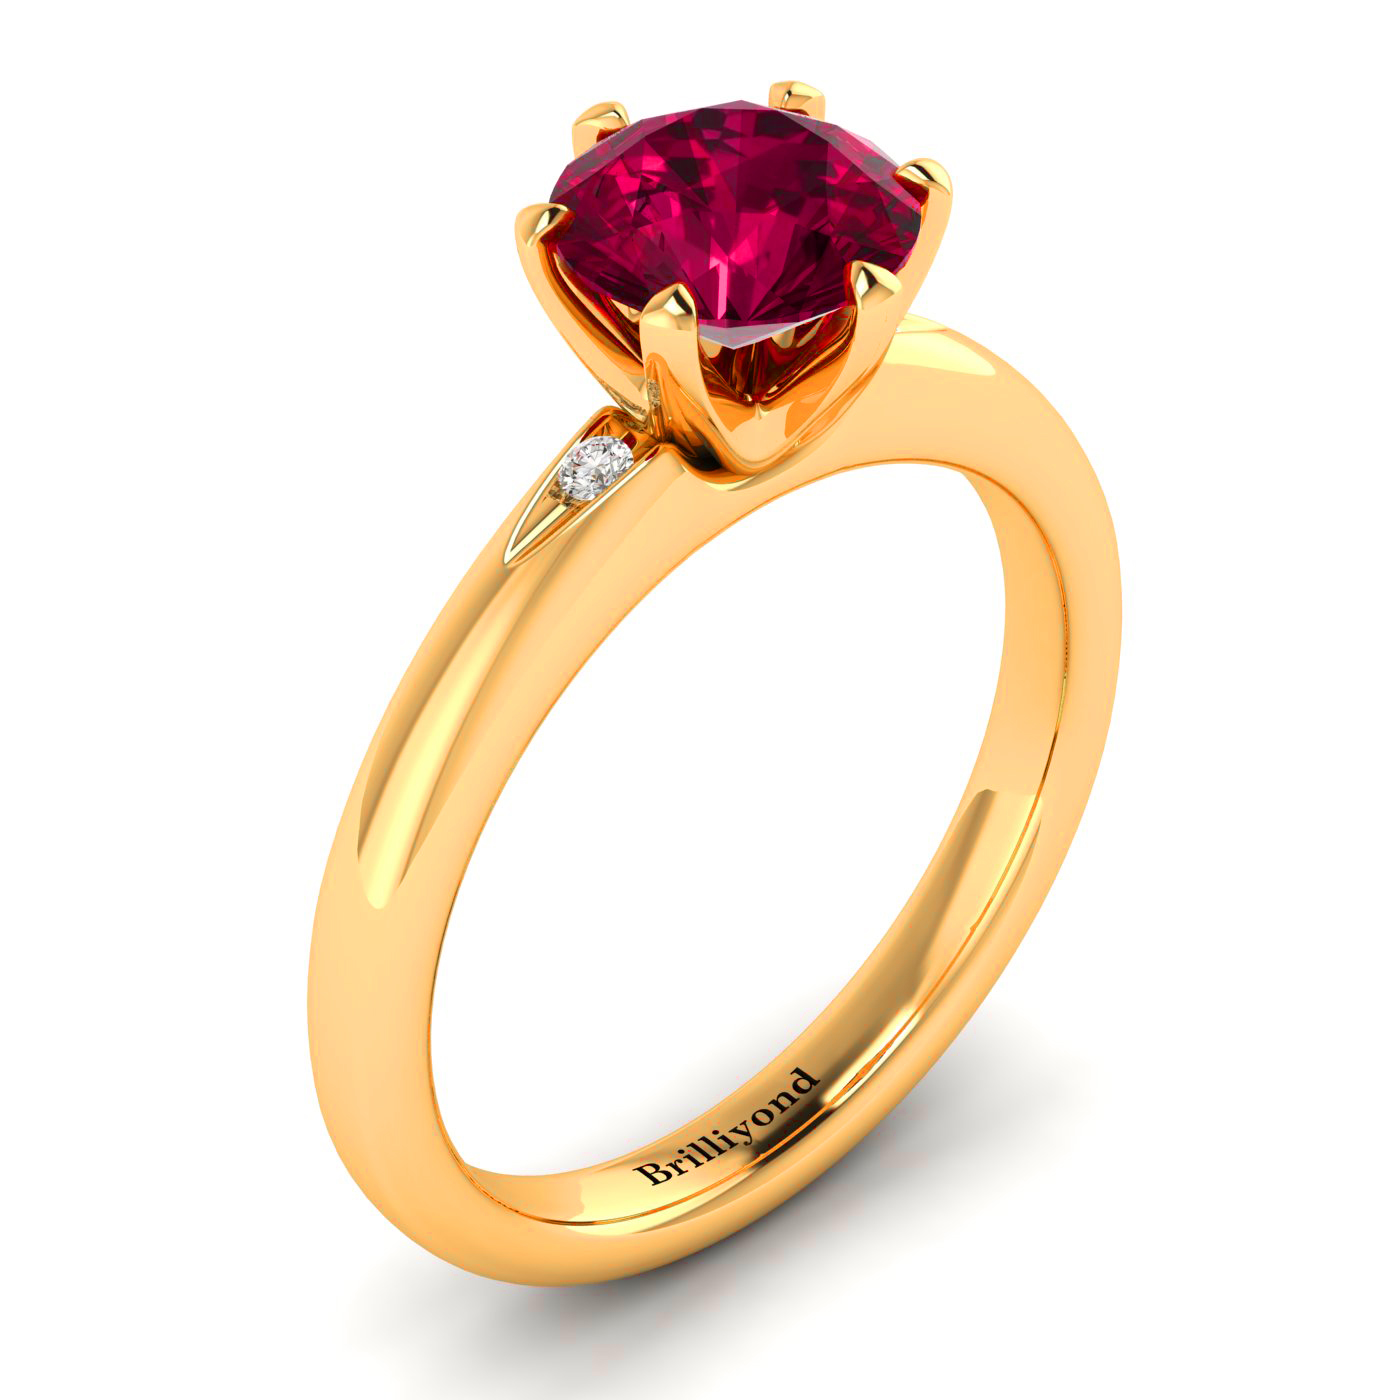 Solitaire Ruby Ring by Brilliyond Australia